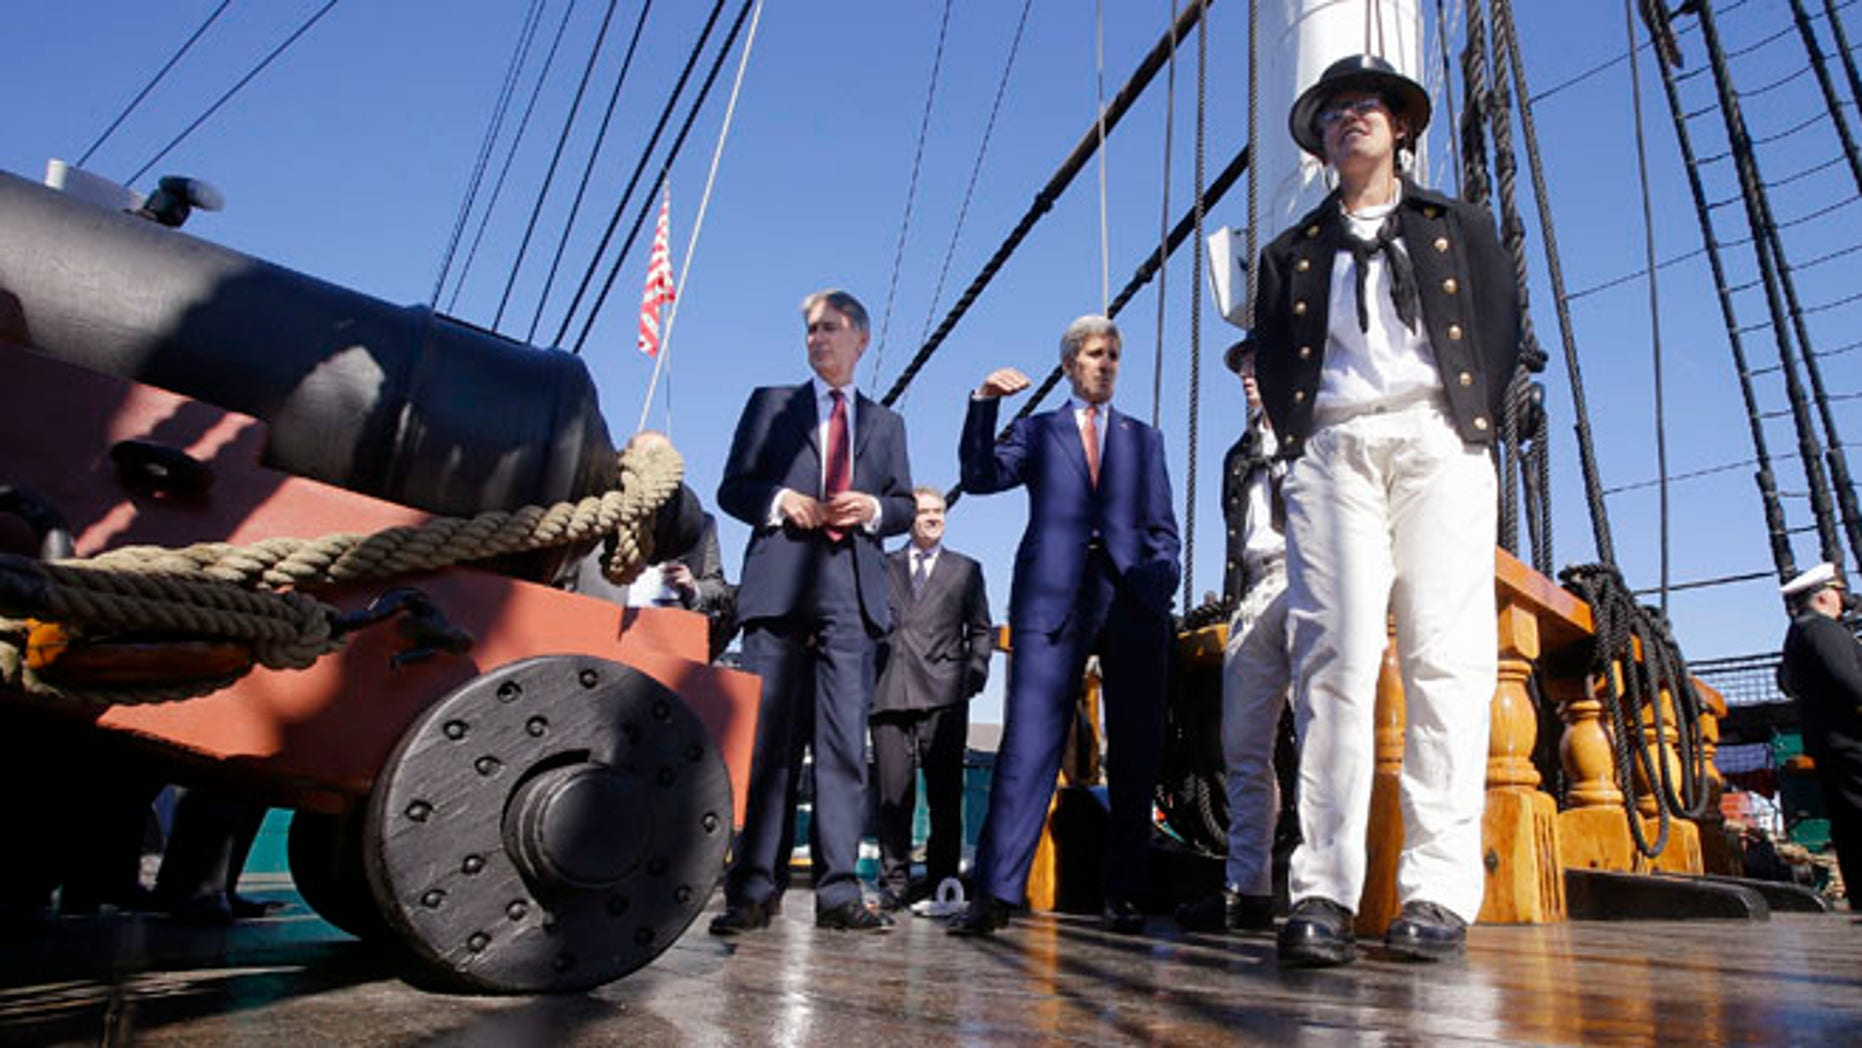 Oct. 9, 2014: Secretary of State John Kerry, center, and British Foreign Secretary Philip Hammond, left, tour the main deck of the USS Constitution, 'Old Ironsides' during a visit to the U.S. Navy's oldest commissioned ship